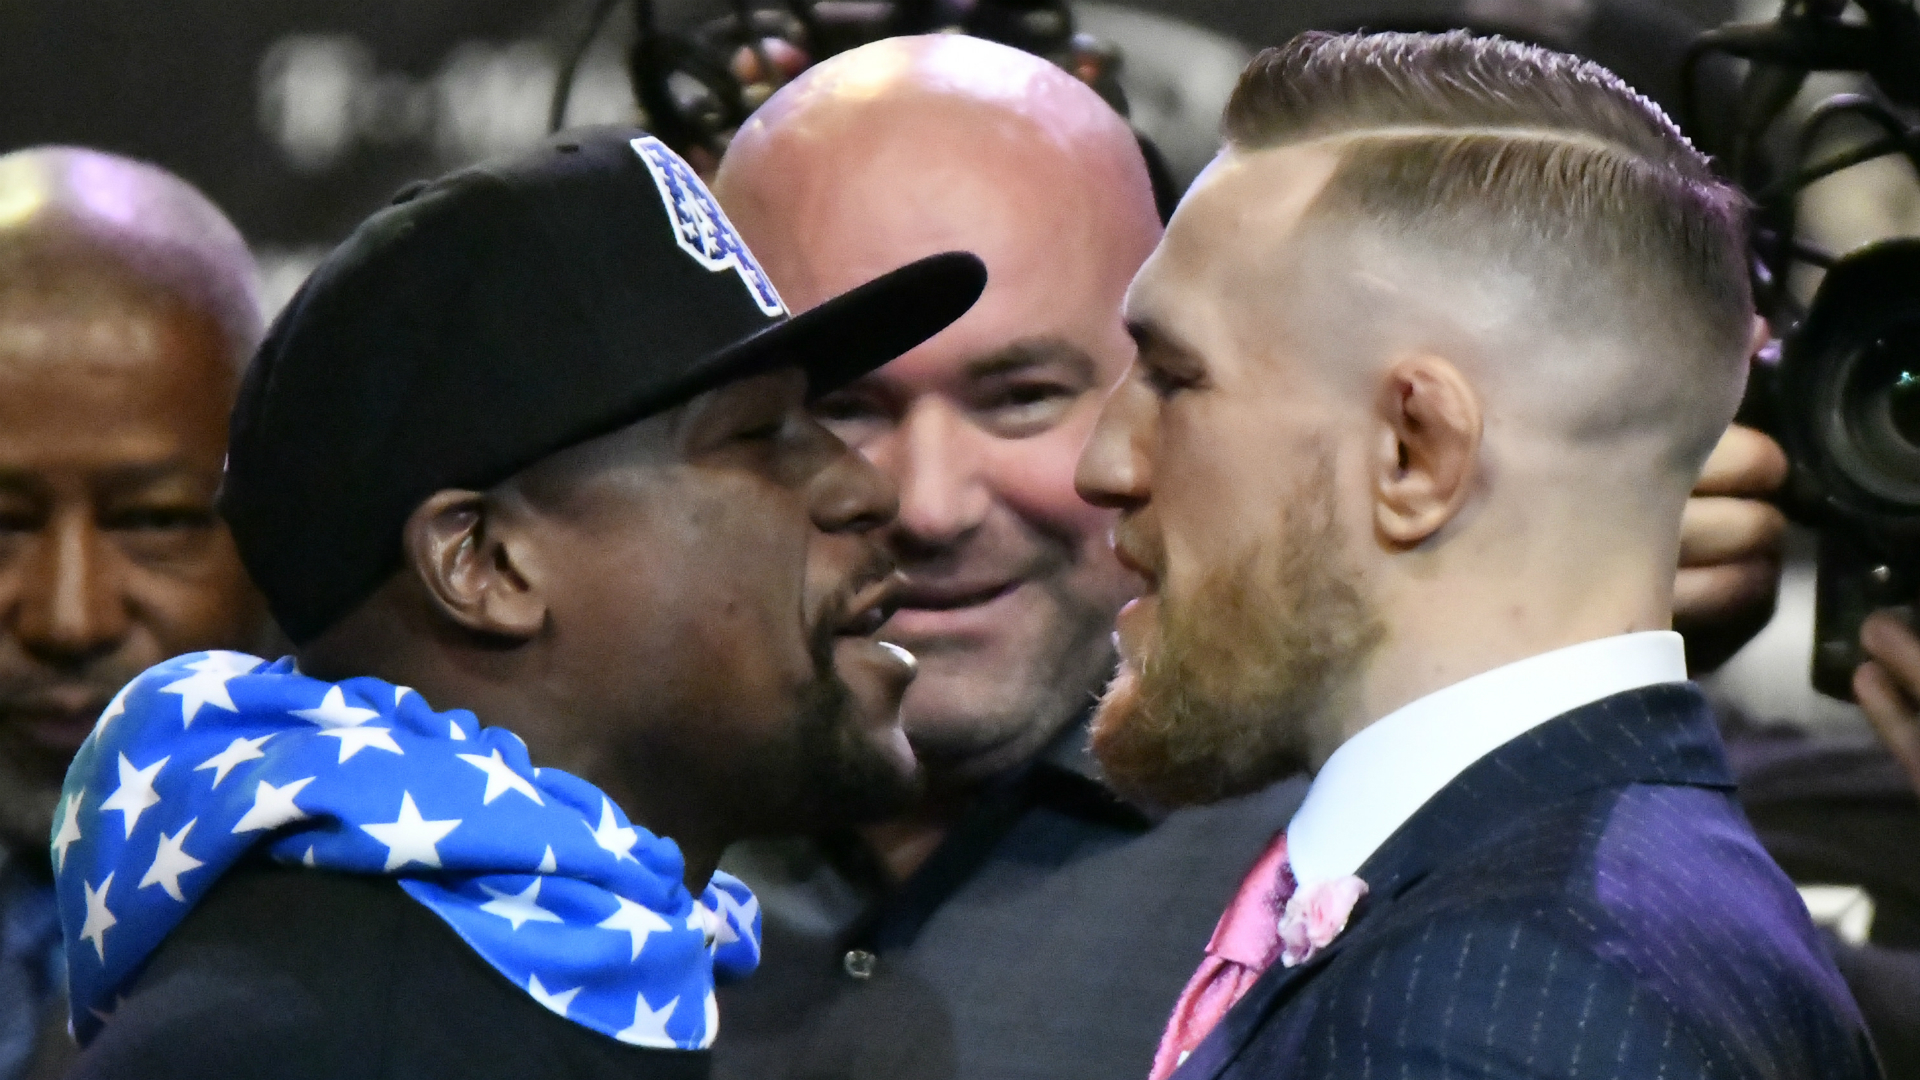 Dana White meeting with Floyd Mayweather's people: 'Don't count anything out'